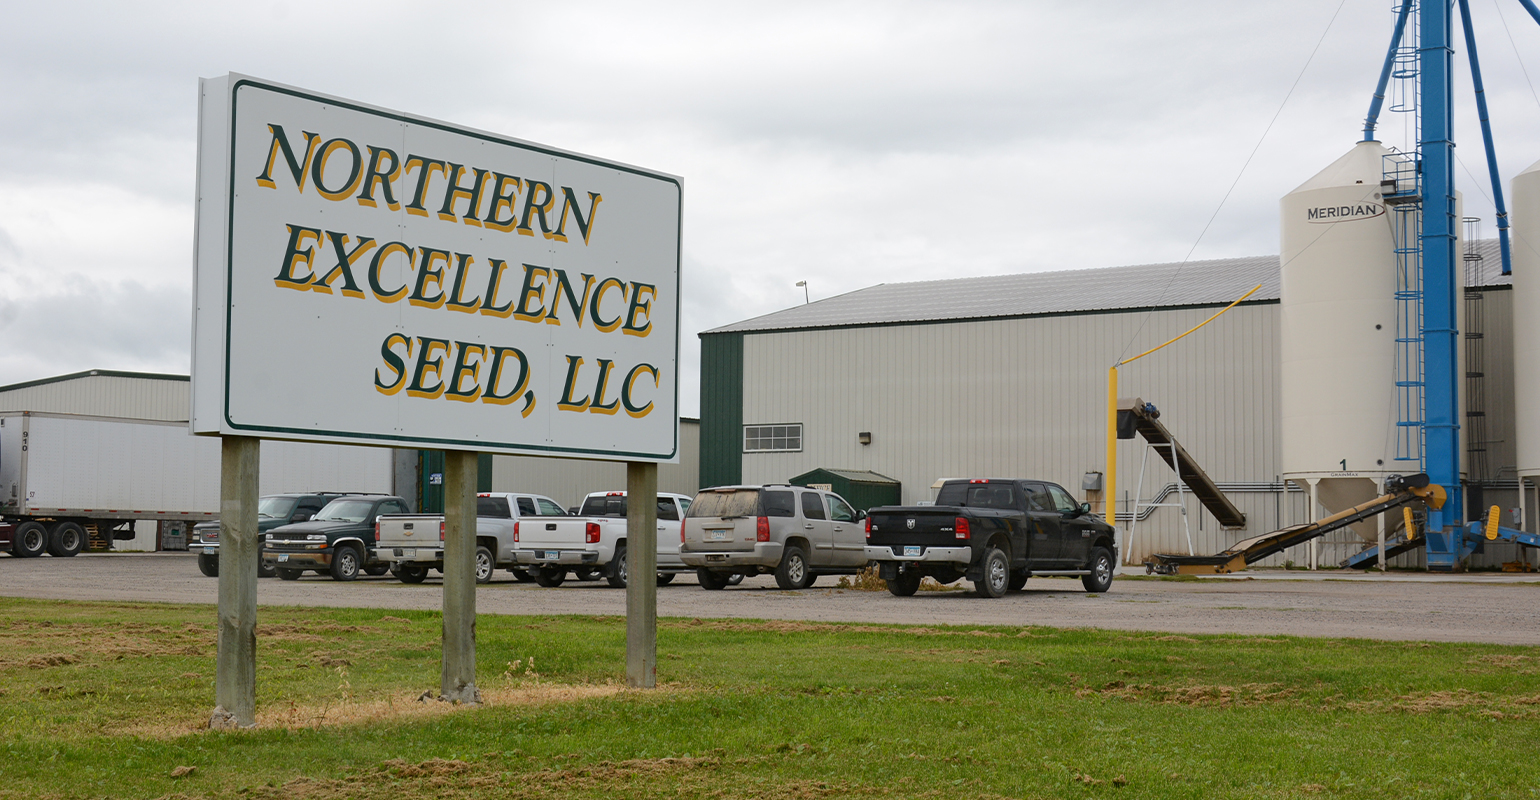 signage and exterior view of Northern Excellence plant and warehouses